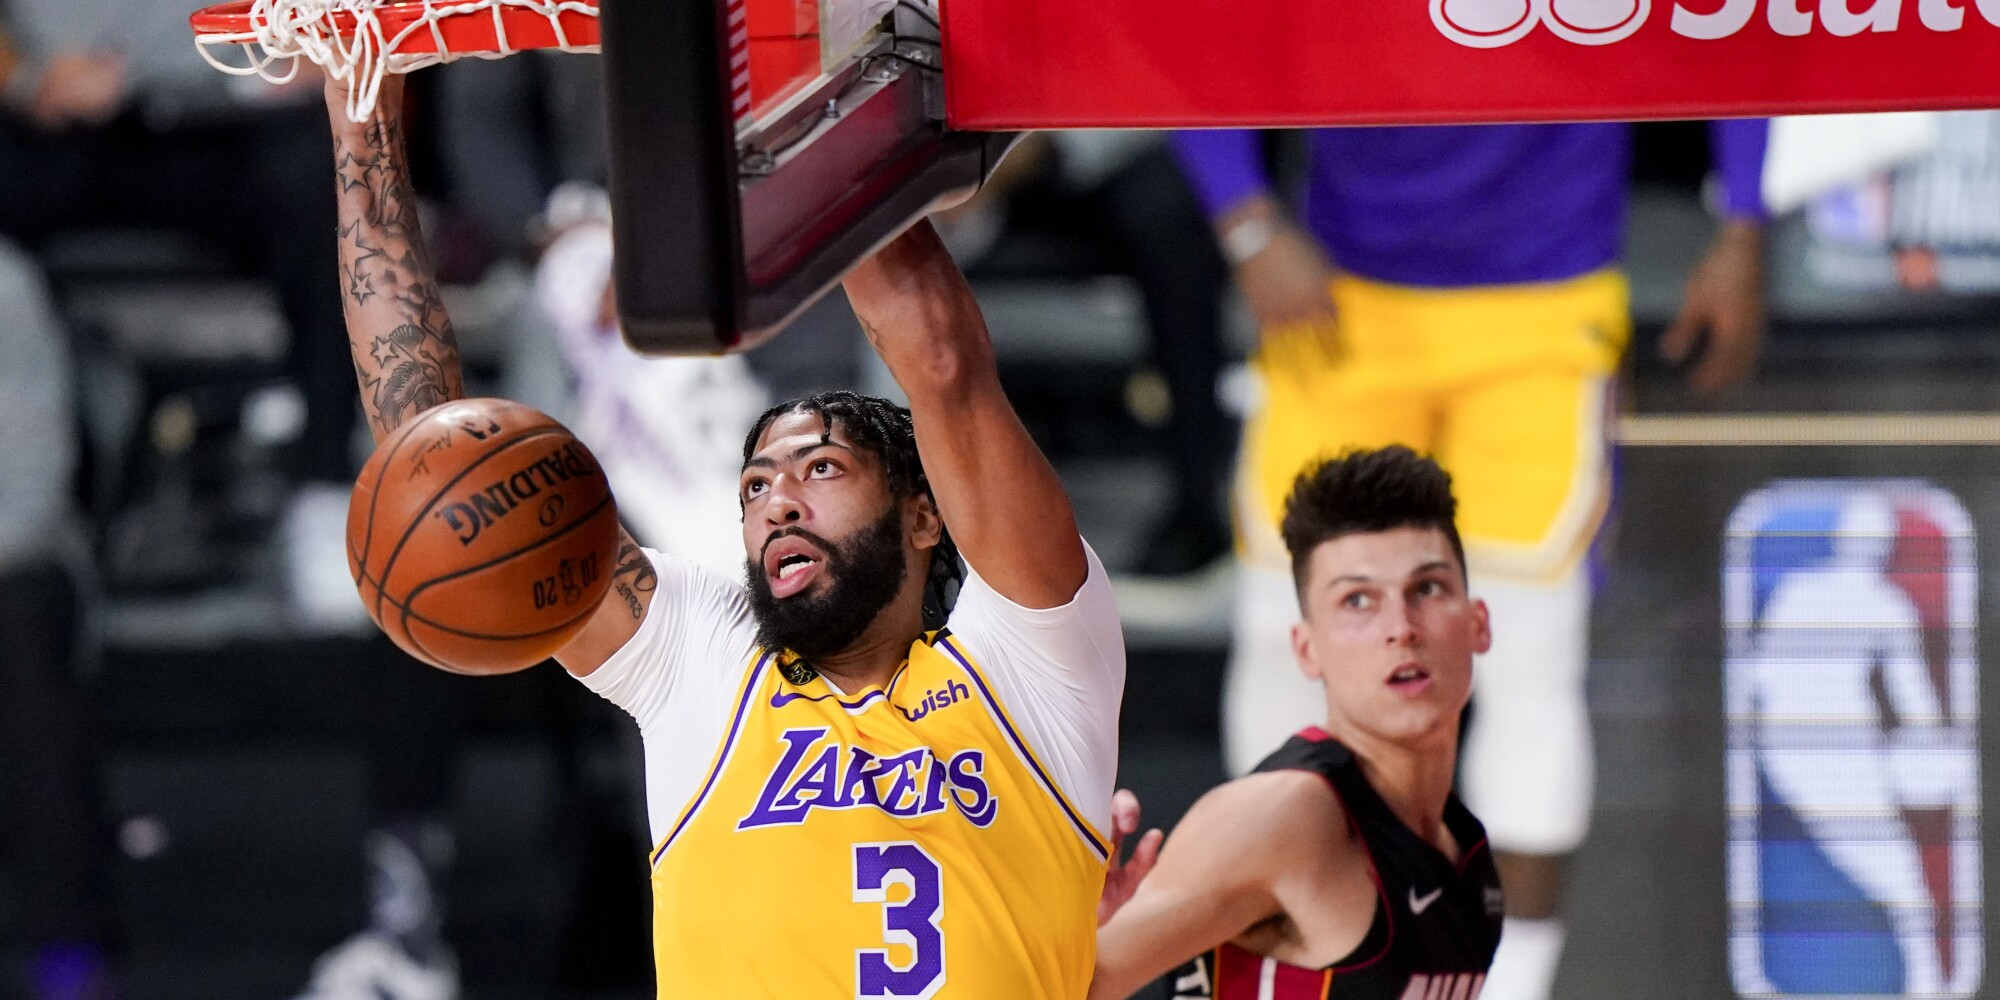 Lakers forward Anthony Davis throws down a dunk against the Heat early in Game 4 on Tuesday night.